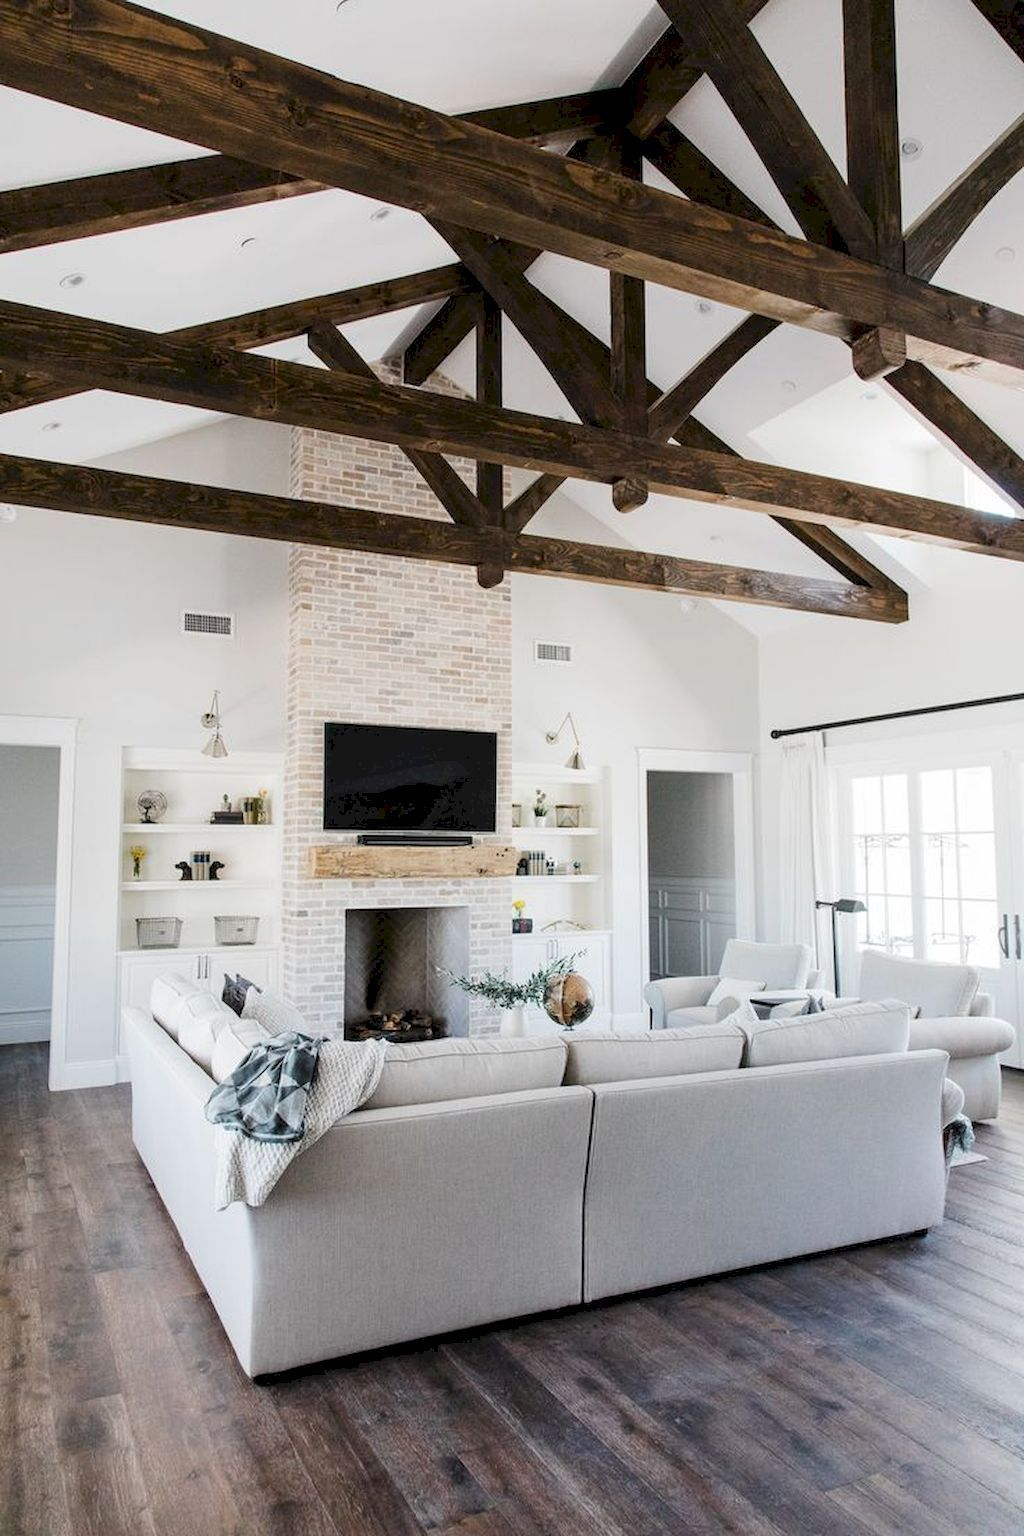 Comfy Farmhouse Living Room Designs To Steal: Comfy Farmhouse Living Room Designs To Steal (19